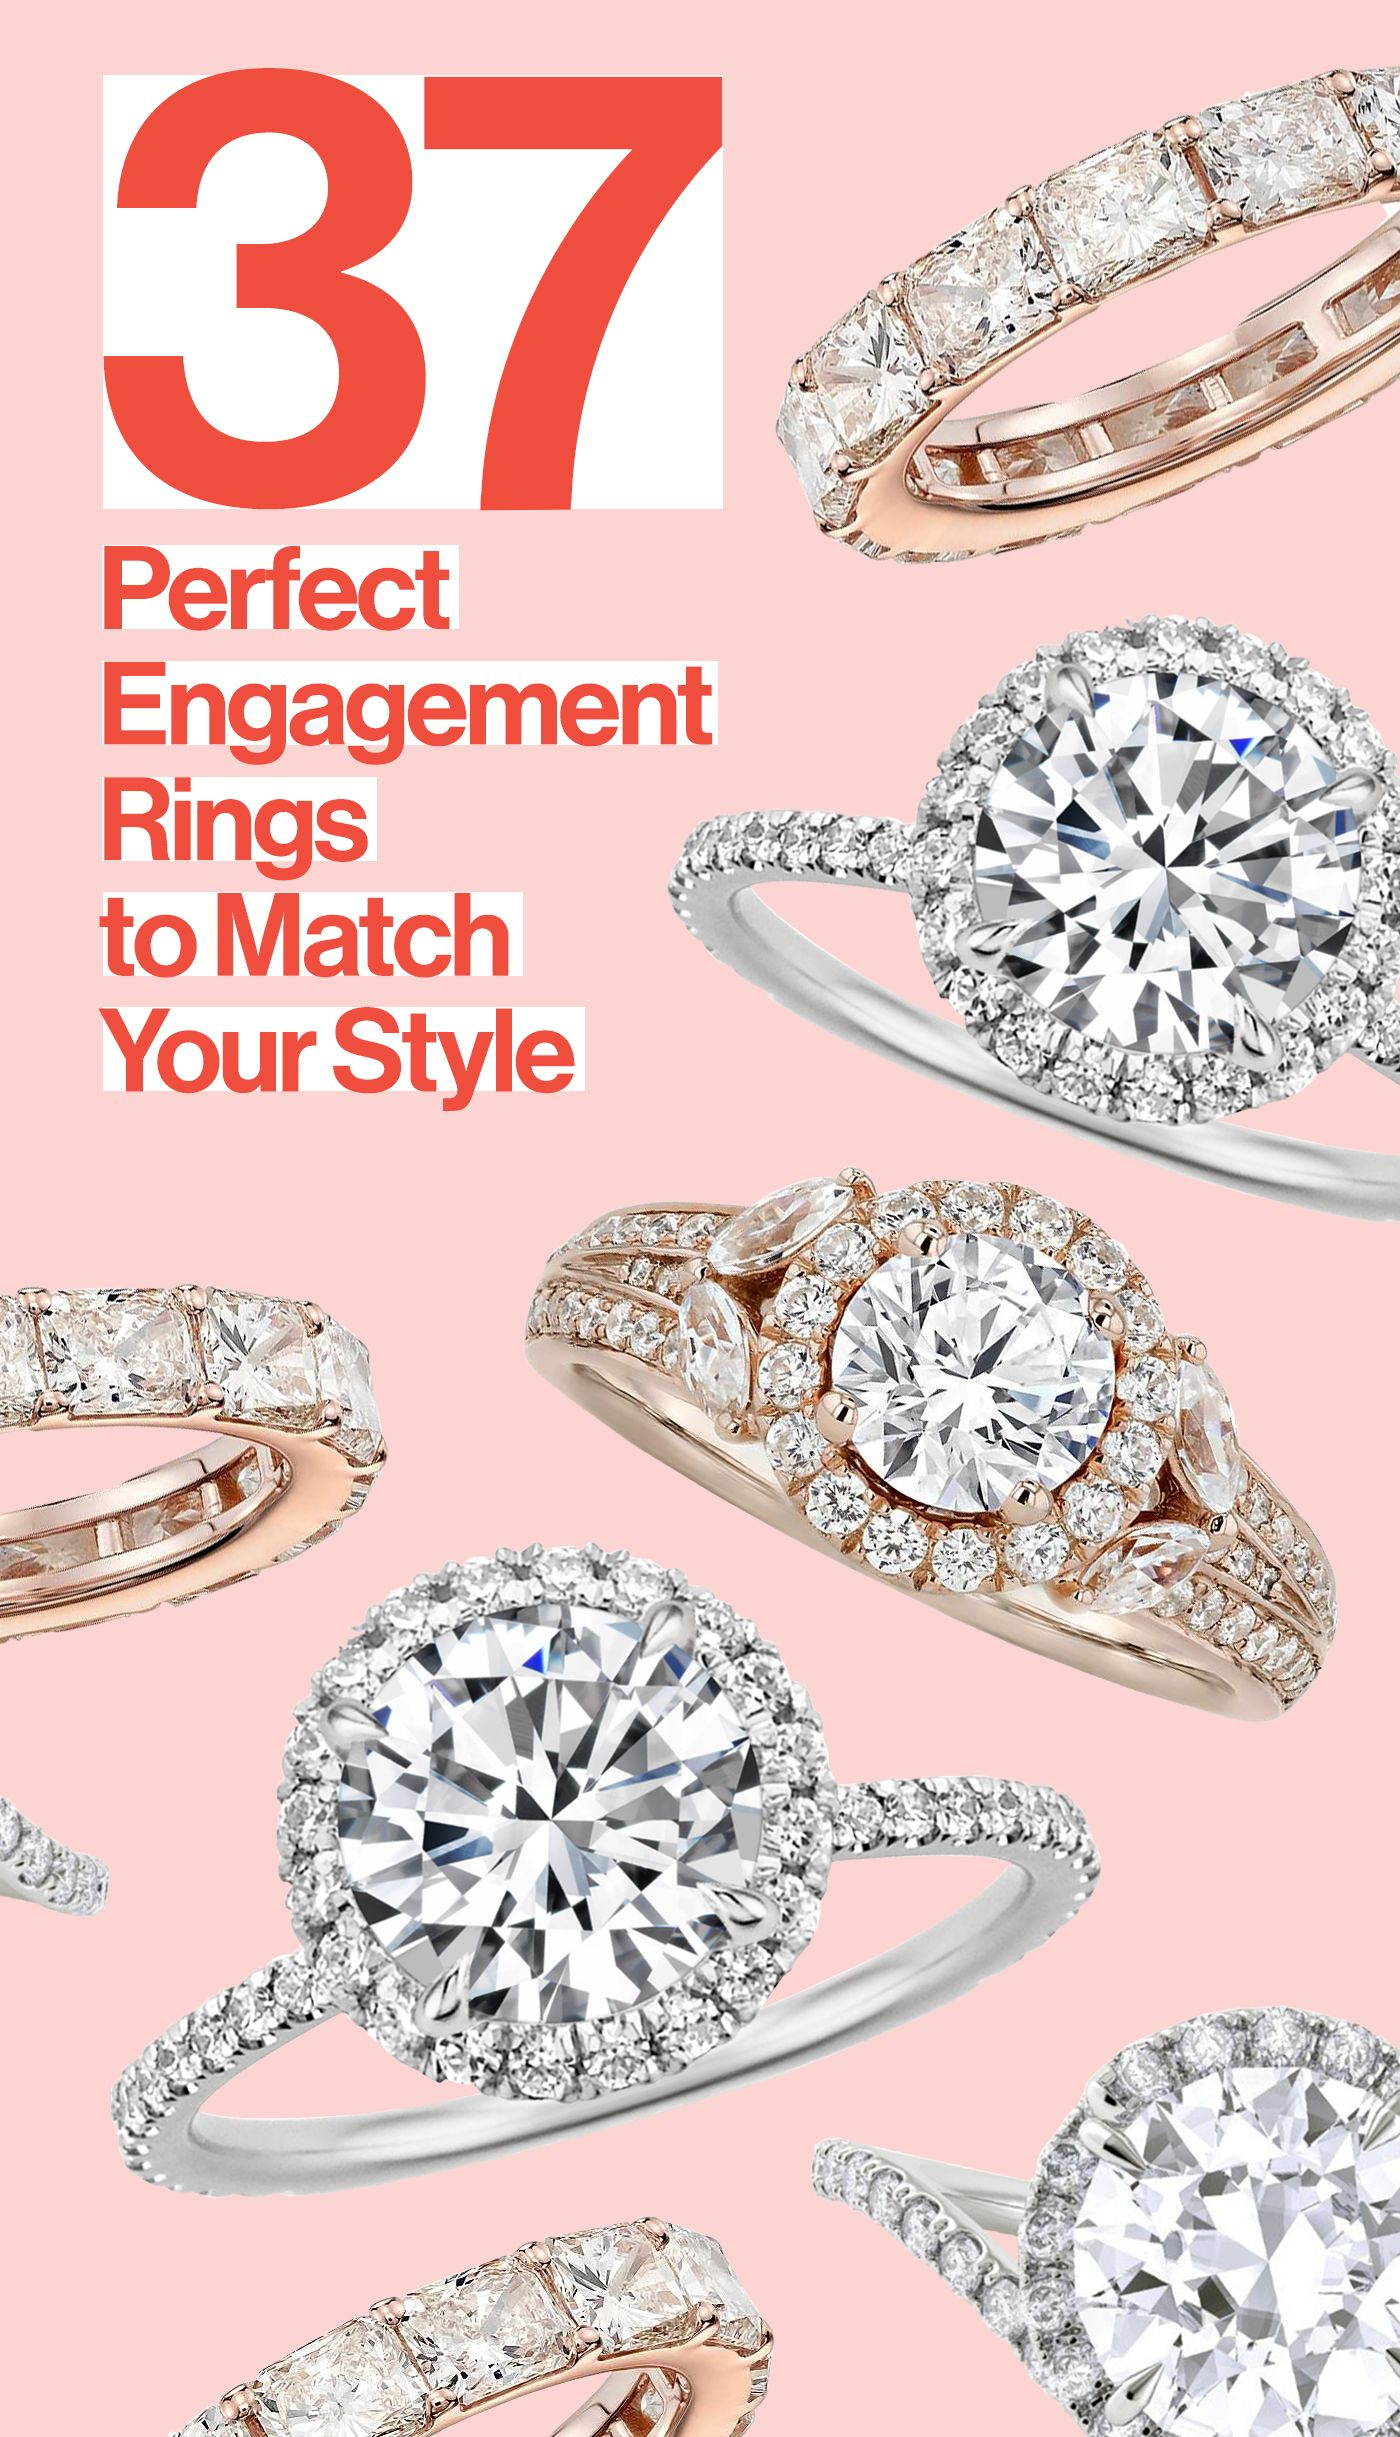 37 Best Engagement Rings for Every Bride | Pinterest | Engagement ...